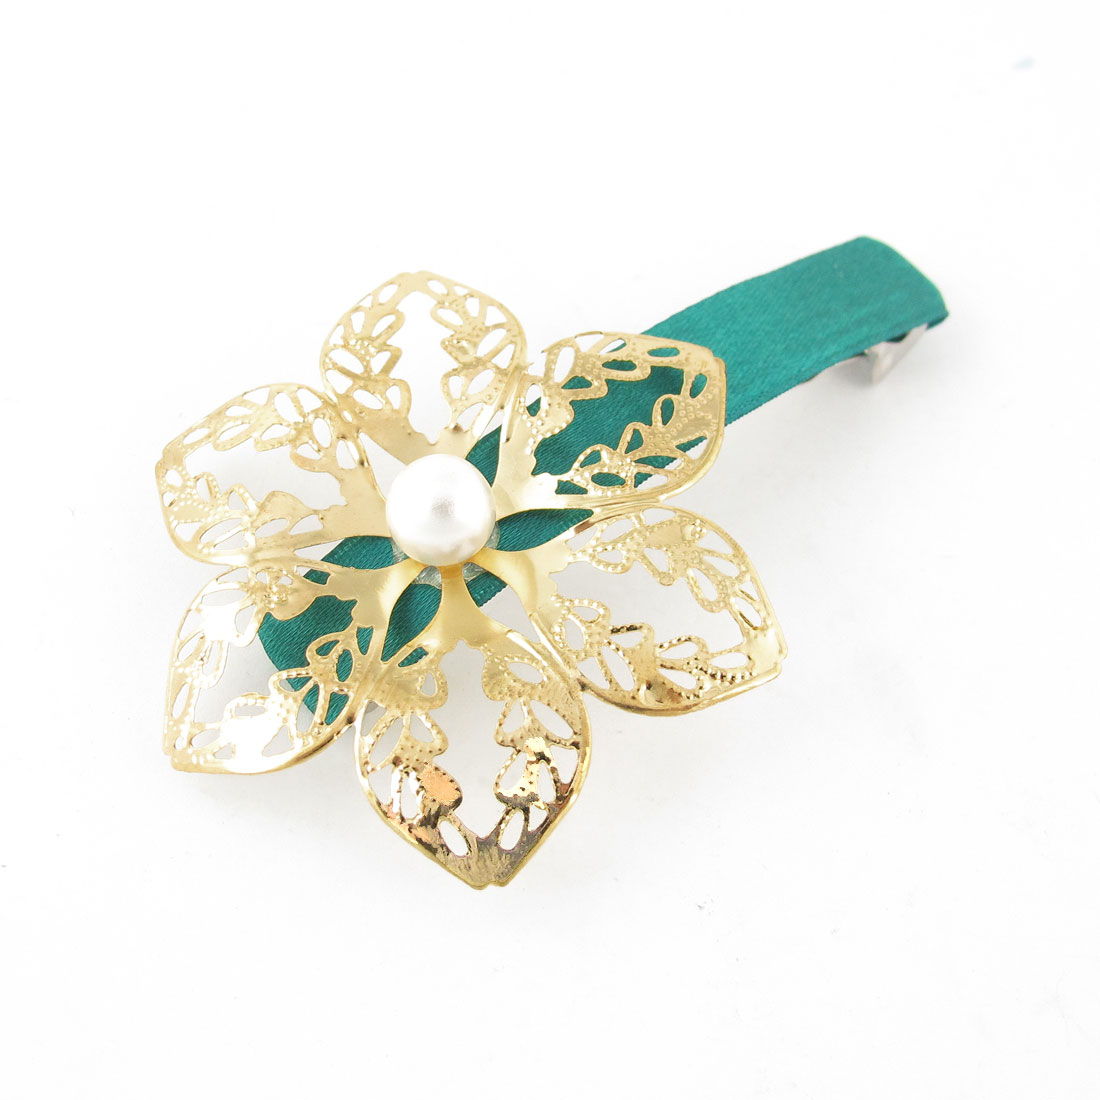 Faux Pearl Decor Gold Tone Flower Design Hairclip Hair Clip Green for Lady